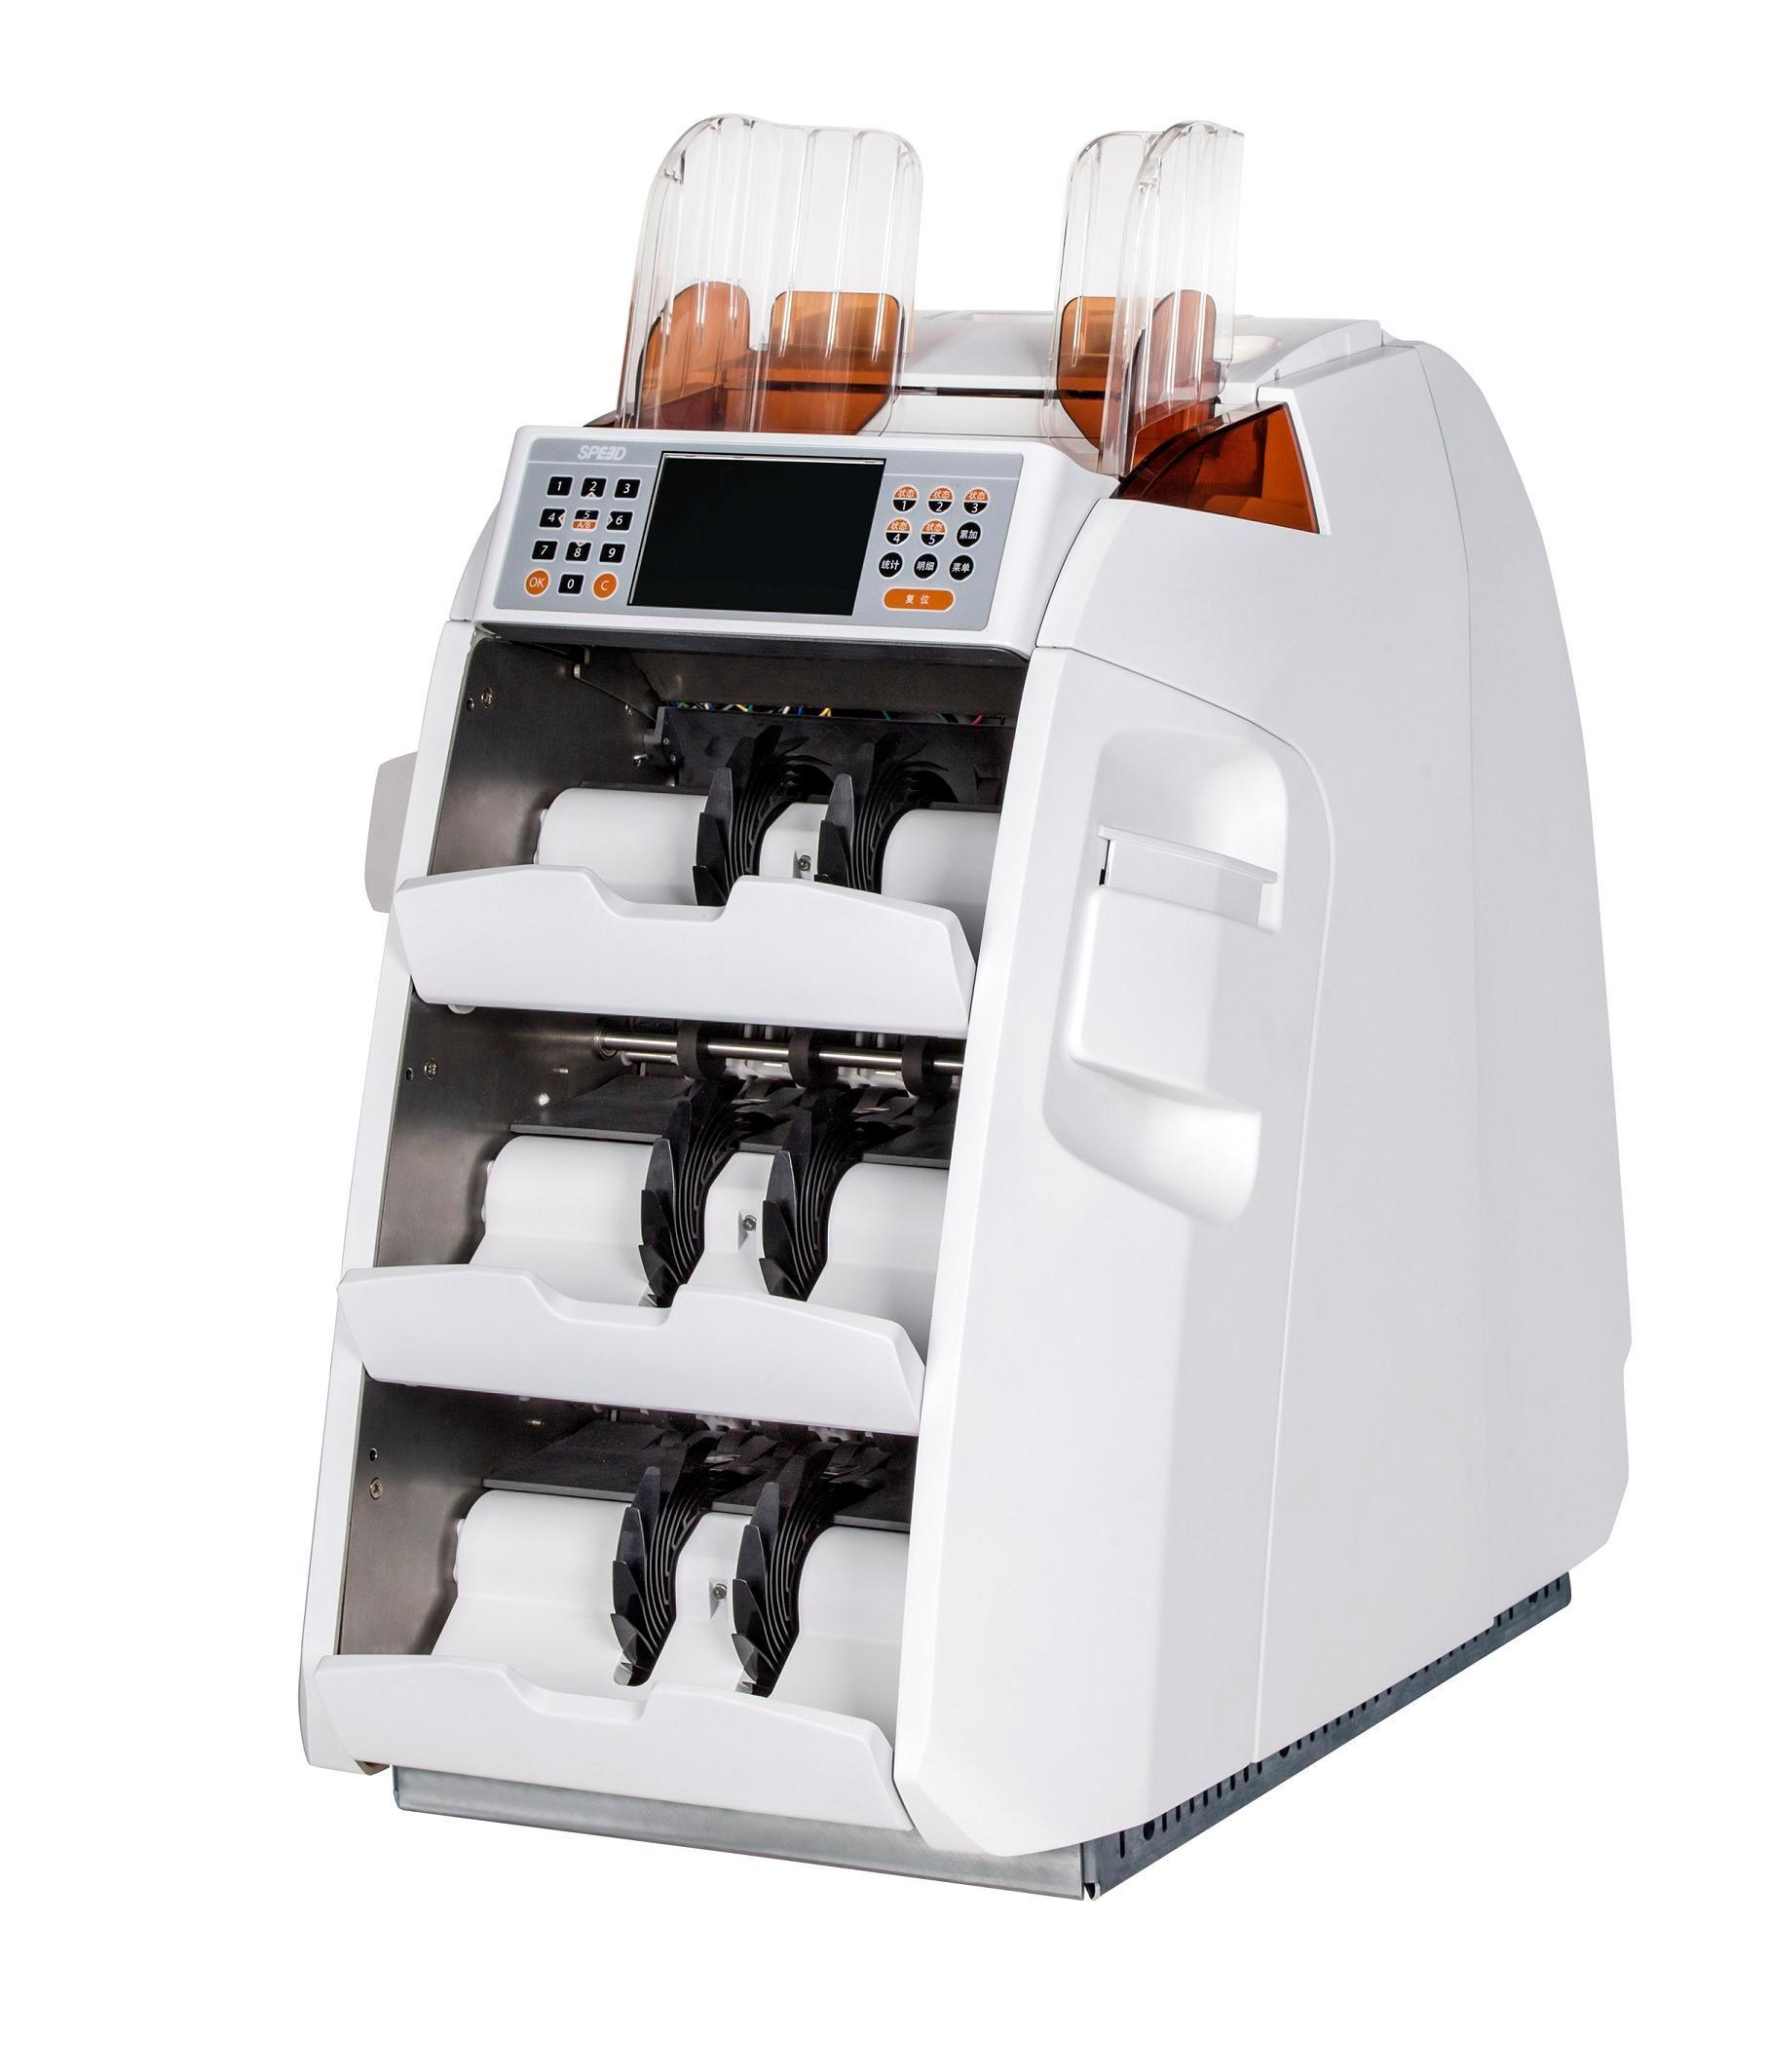 Three Pocket Fitness Sorter with The Full Banking Solution